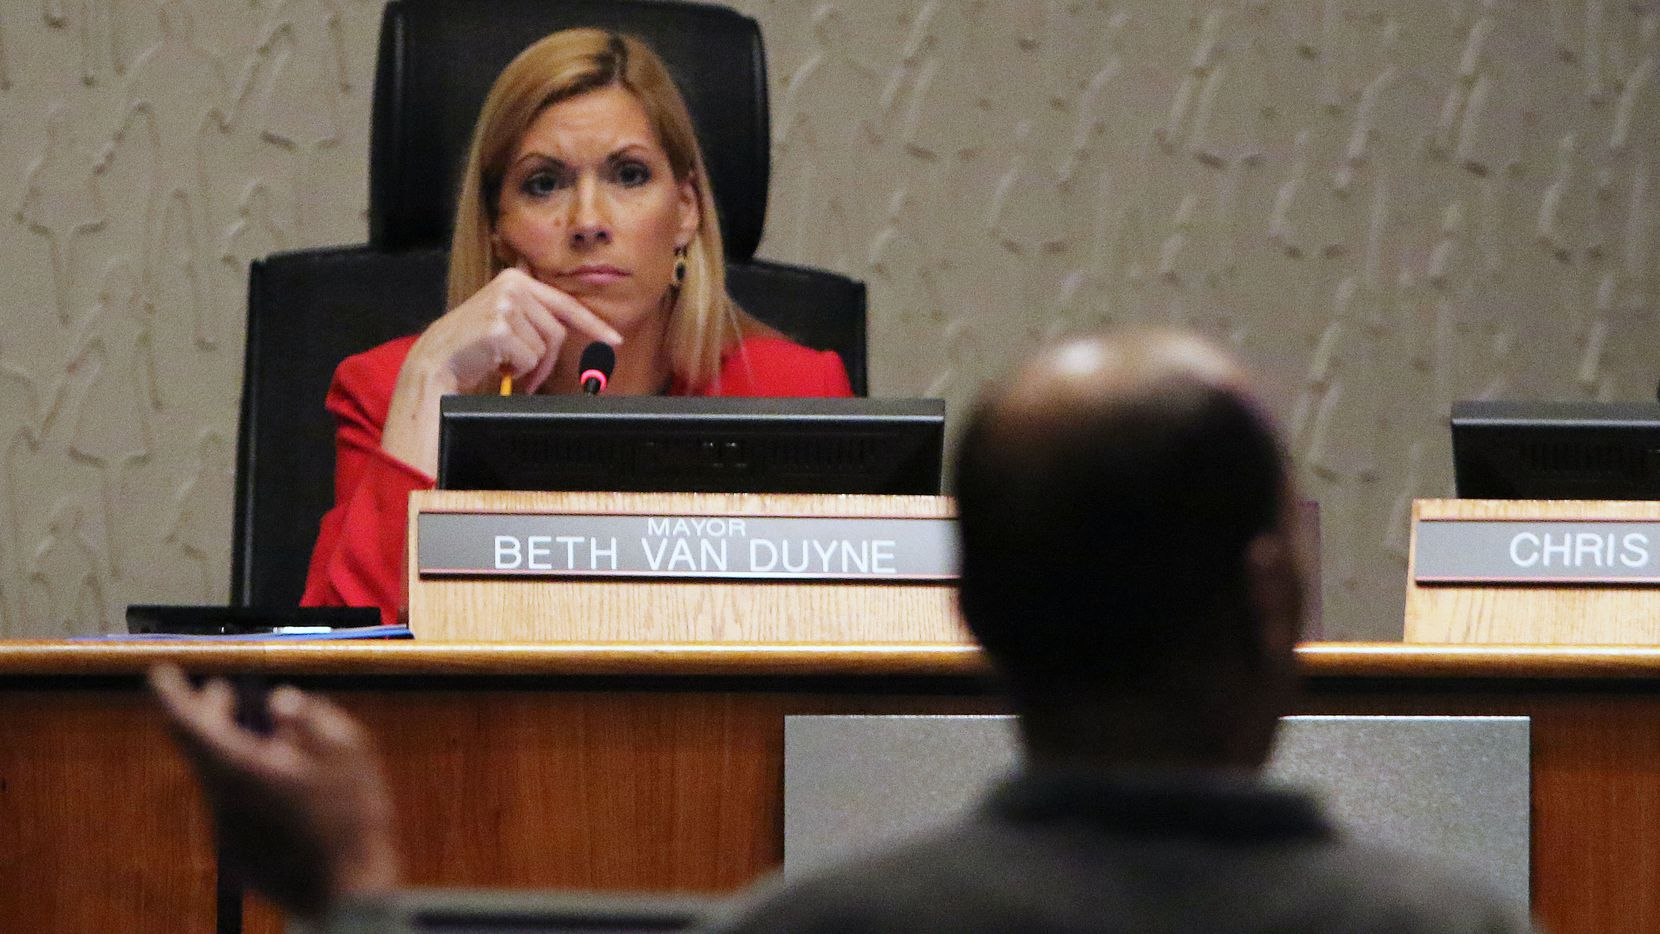 Irving Mayor Beth Van Duyne listens to a speech from Anthony Bond, founder of the Irving NAACP chapter, on legislation HB 562 during a city council meeting at Irving City Hall on Thursday, March 19, 2015 in Irving, Texas.  (Gregory Castillo/The Dallas Morning News)